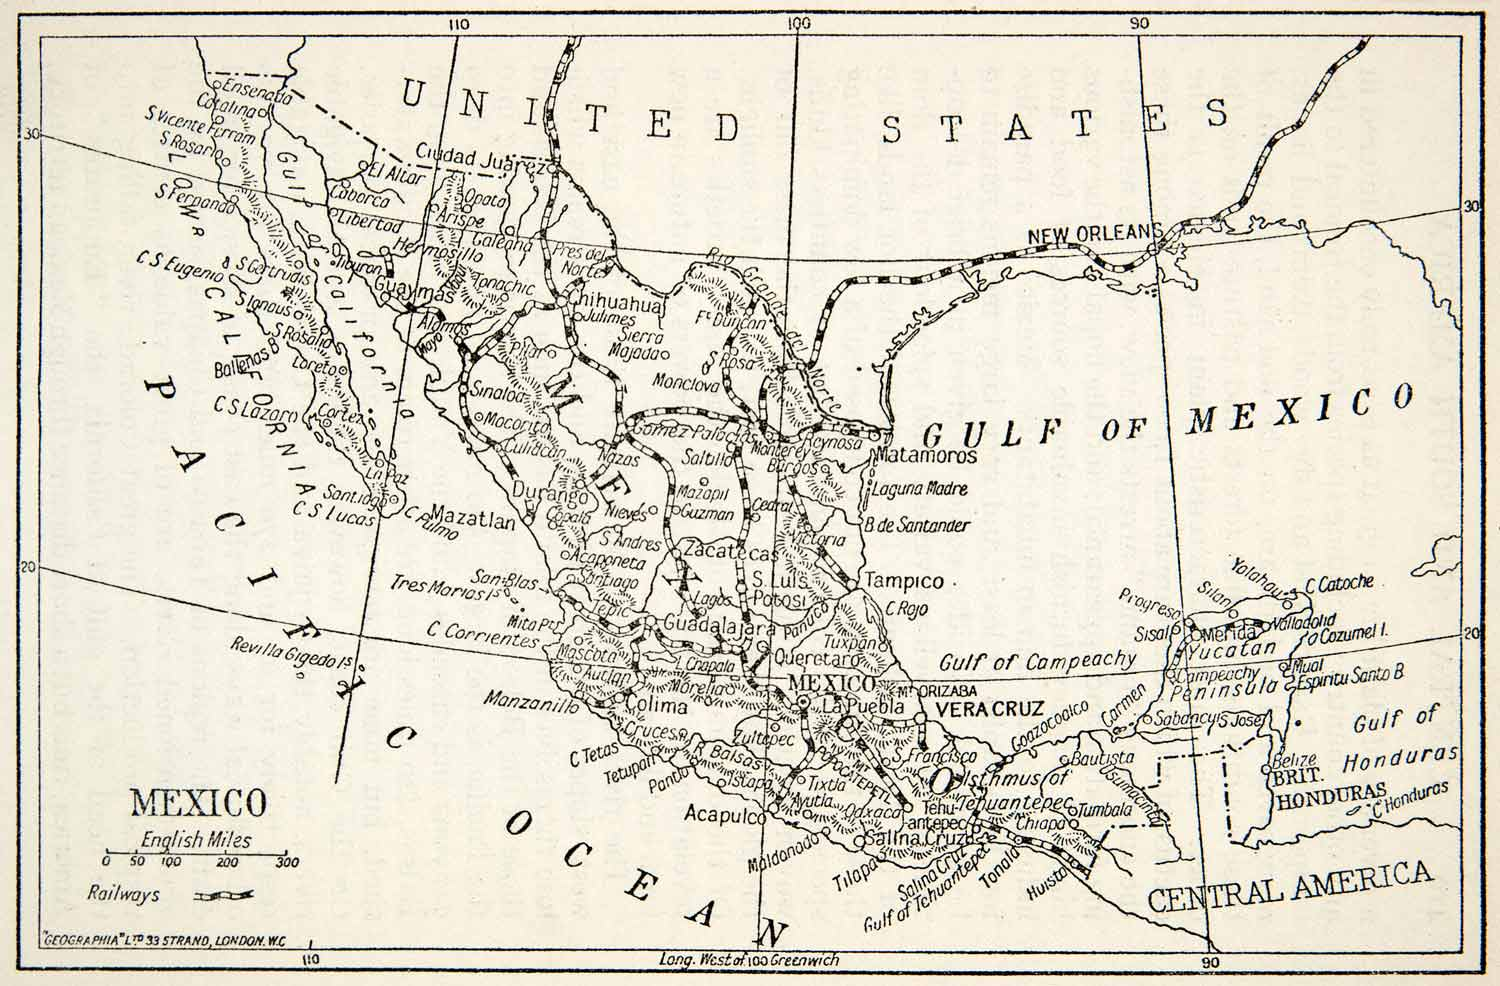 1913 Print Map Railroad United States Mexico Central America Pacific Ocean XGVB7